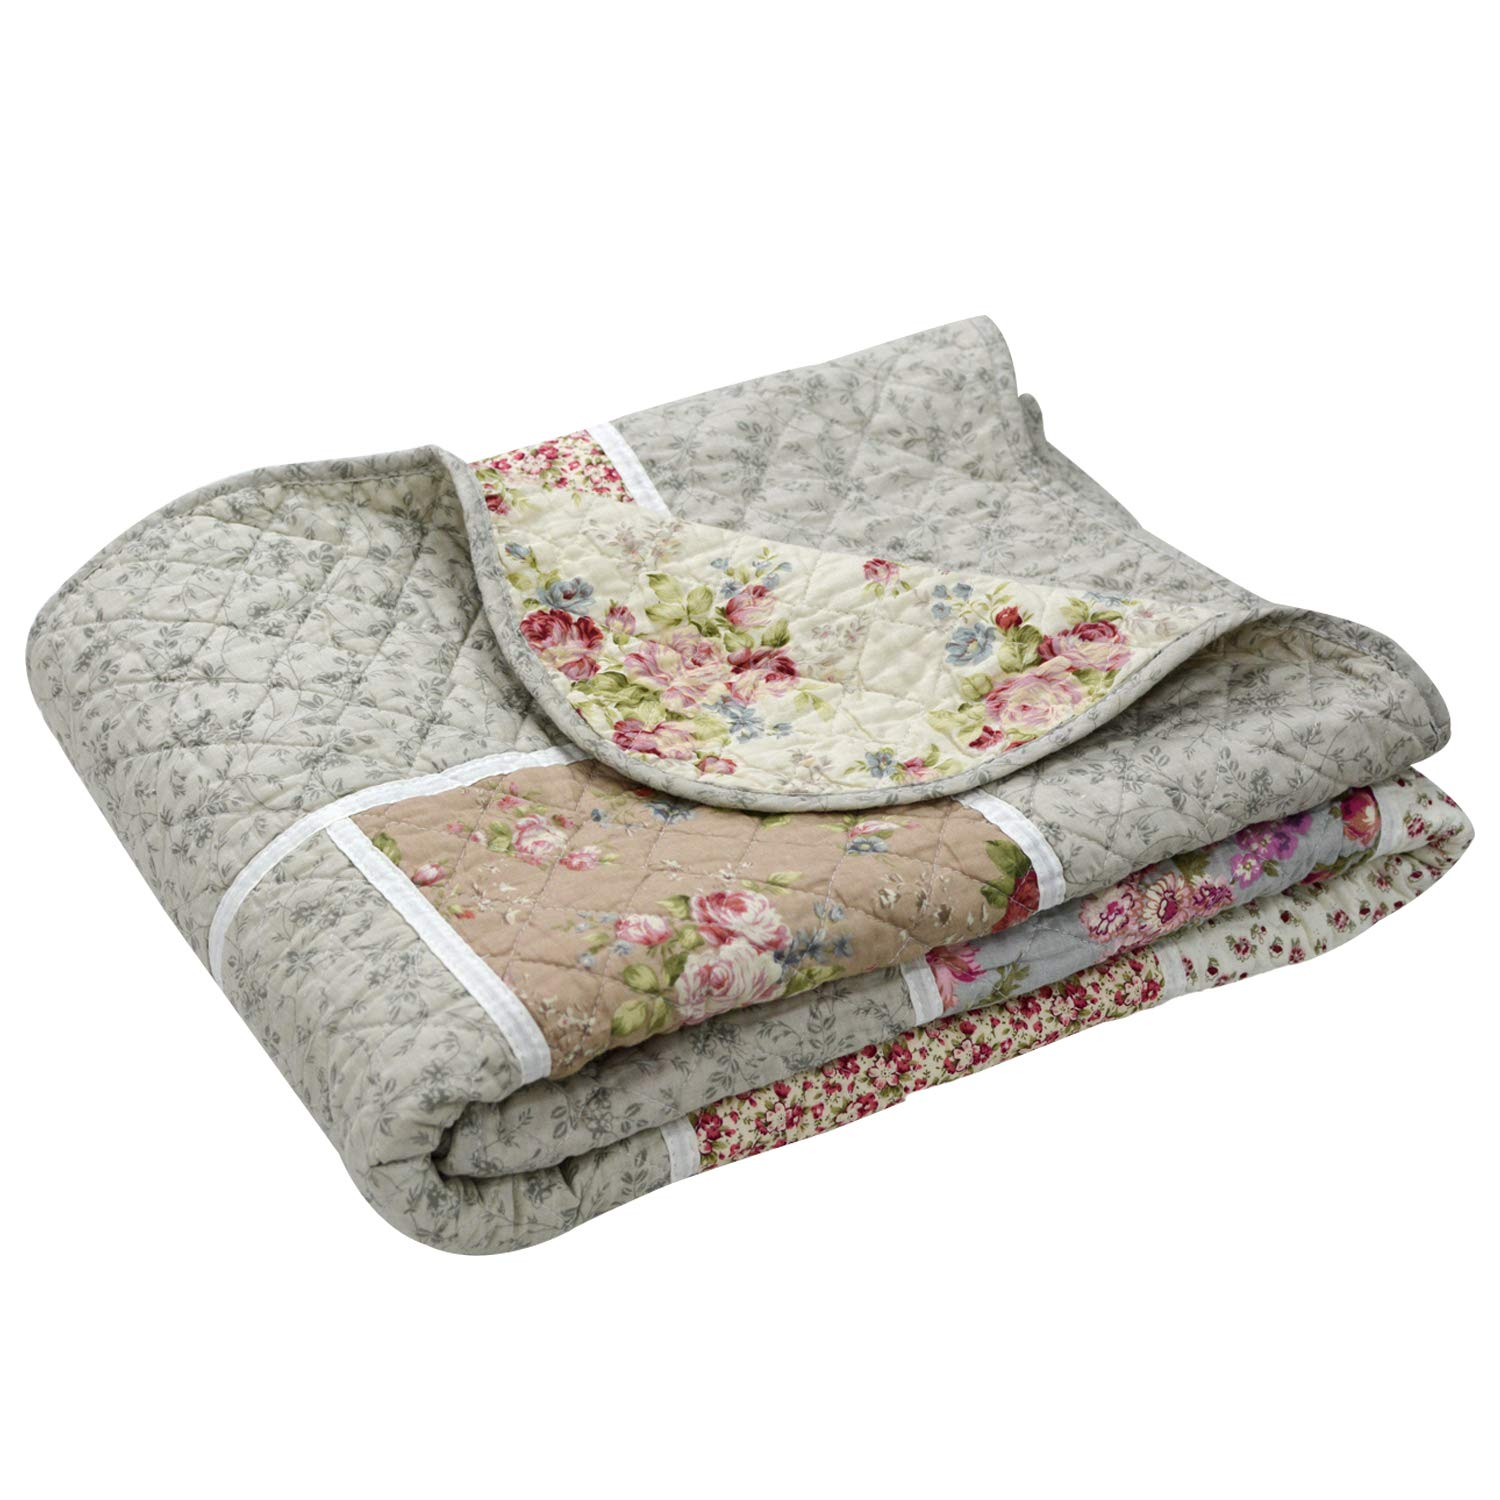 Brandream Twin Size Girls Romantic Rustic Chic Quilts Blankets Vintage Lightweight Comforters Bedspreads for Daybed by Brandream